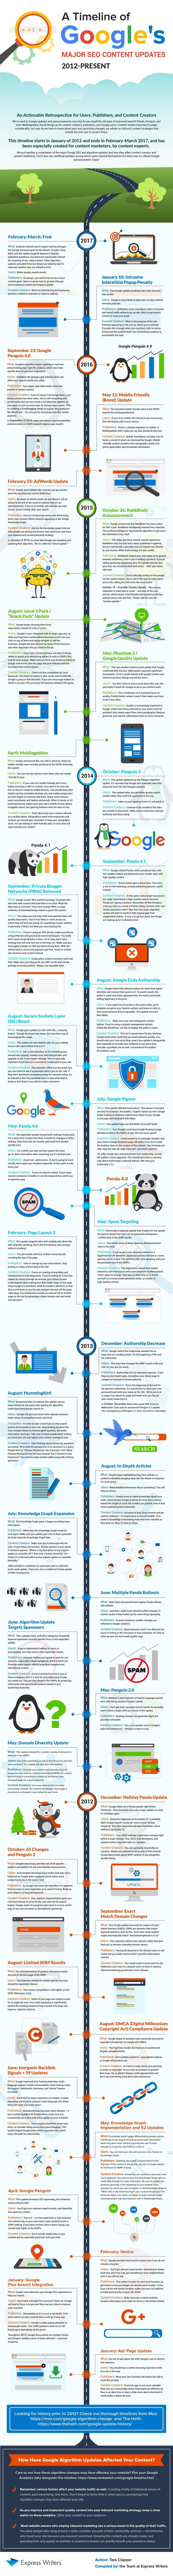 timeline history of Googles seo content updates